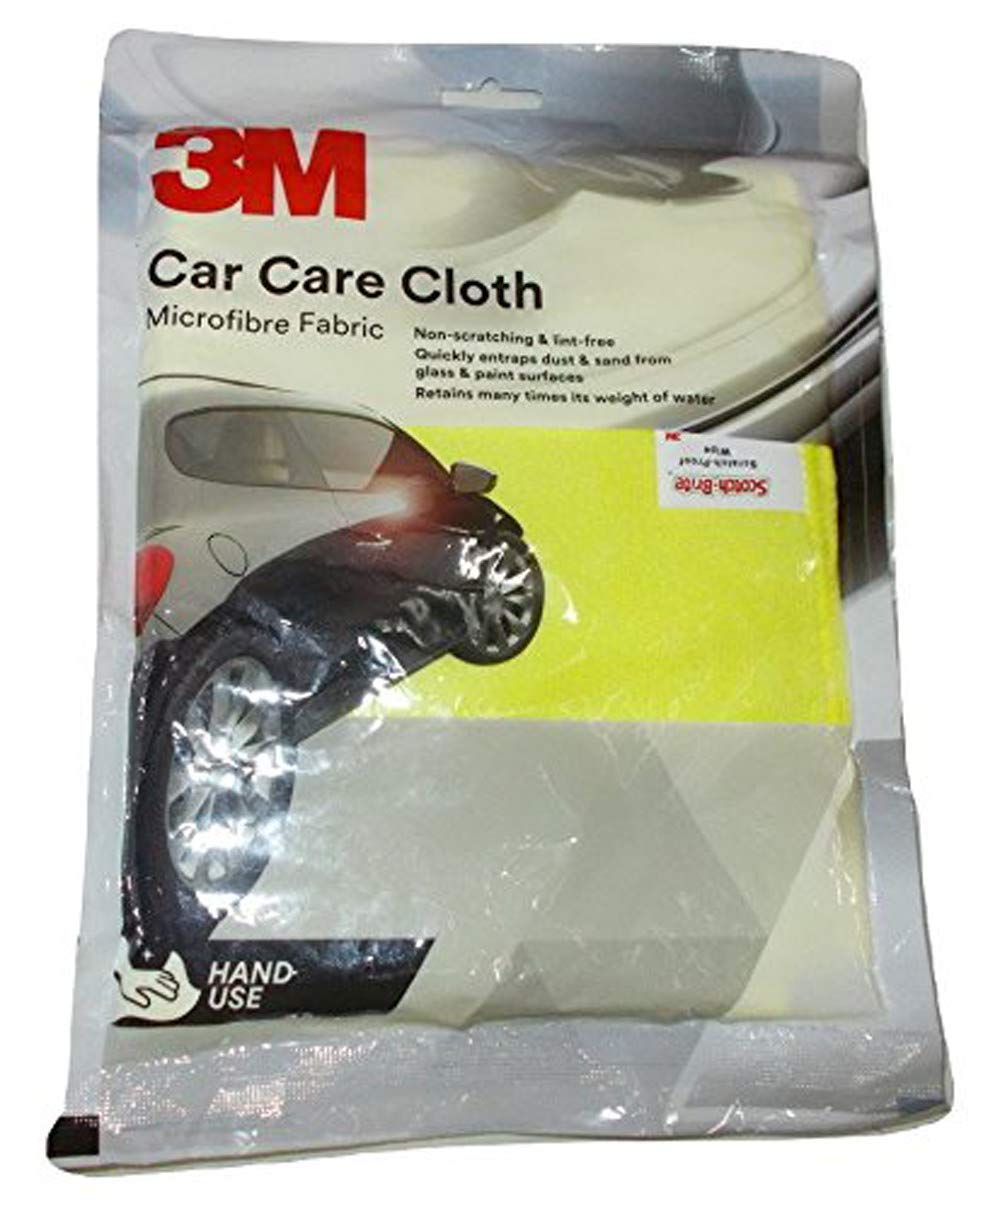 3M Microfiber Cloth (Pack of 6)